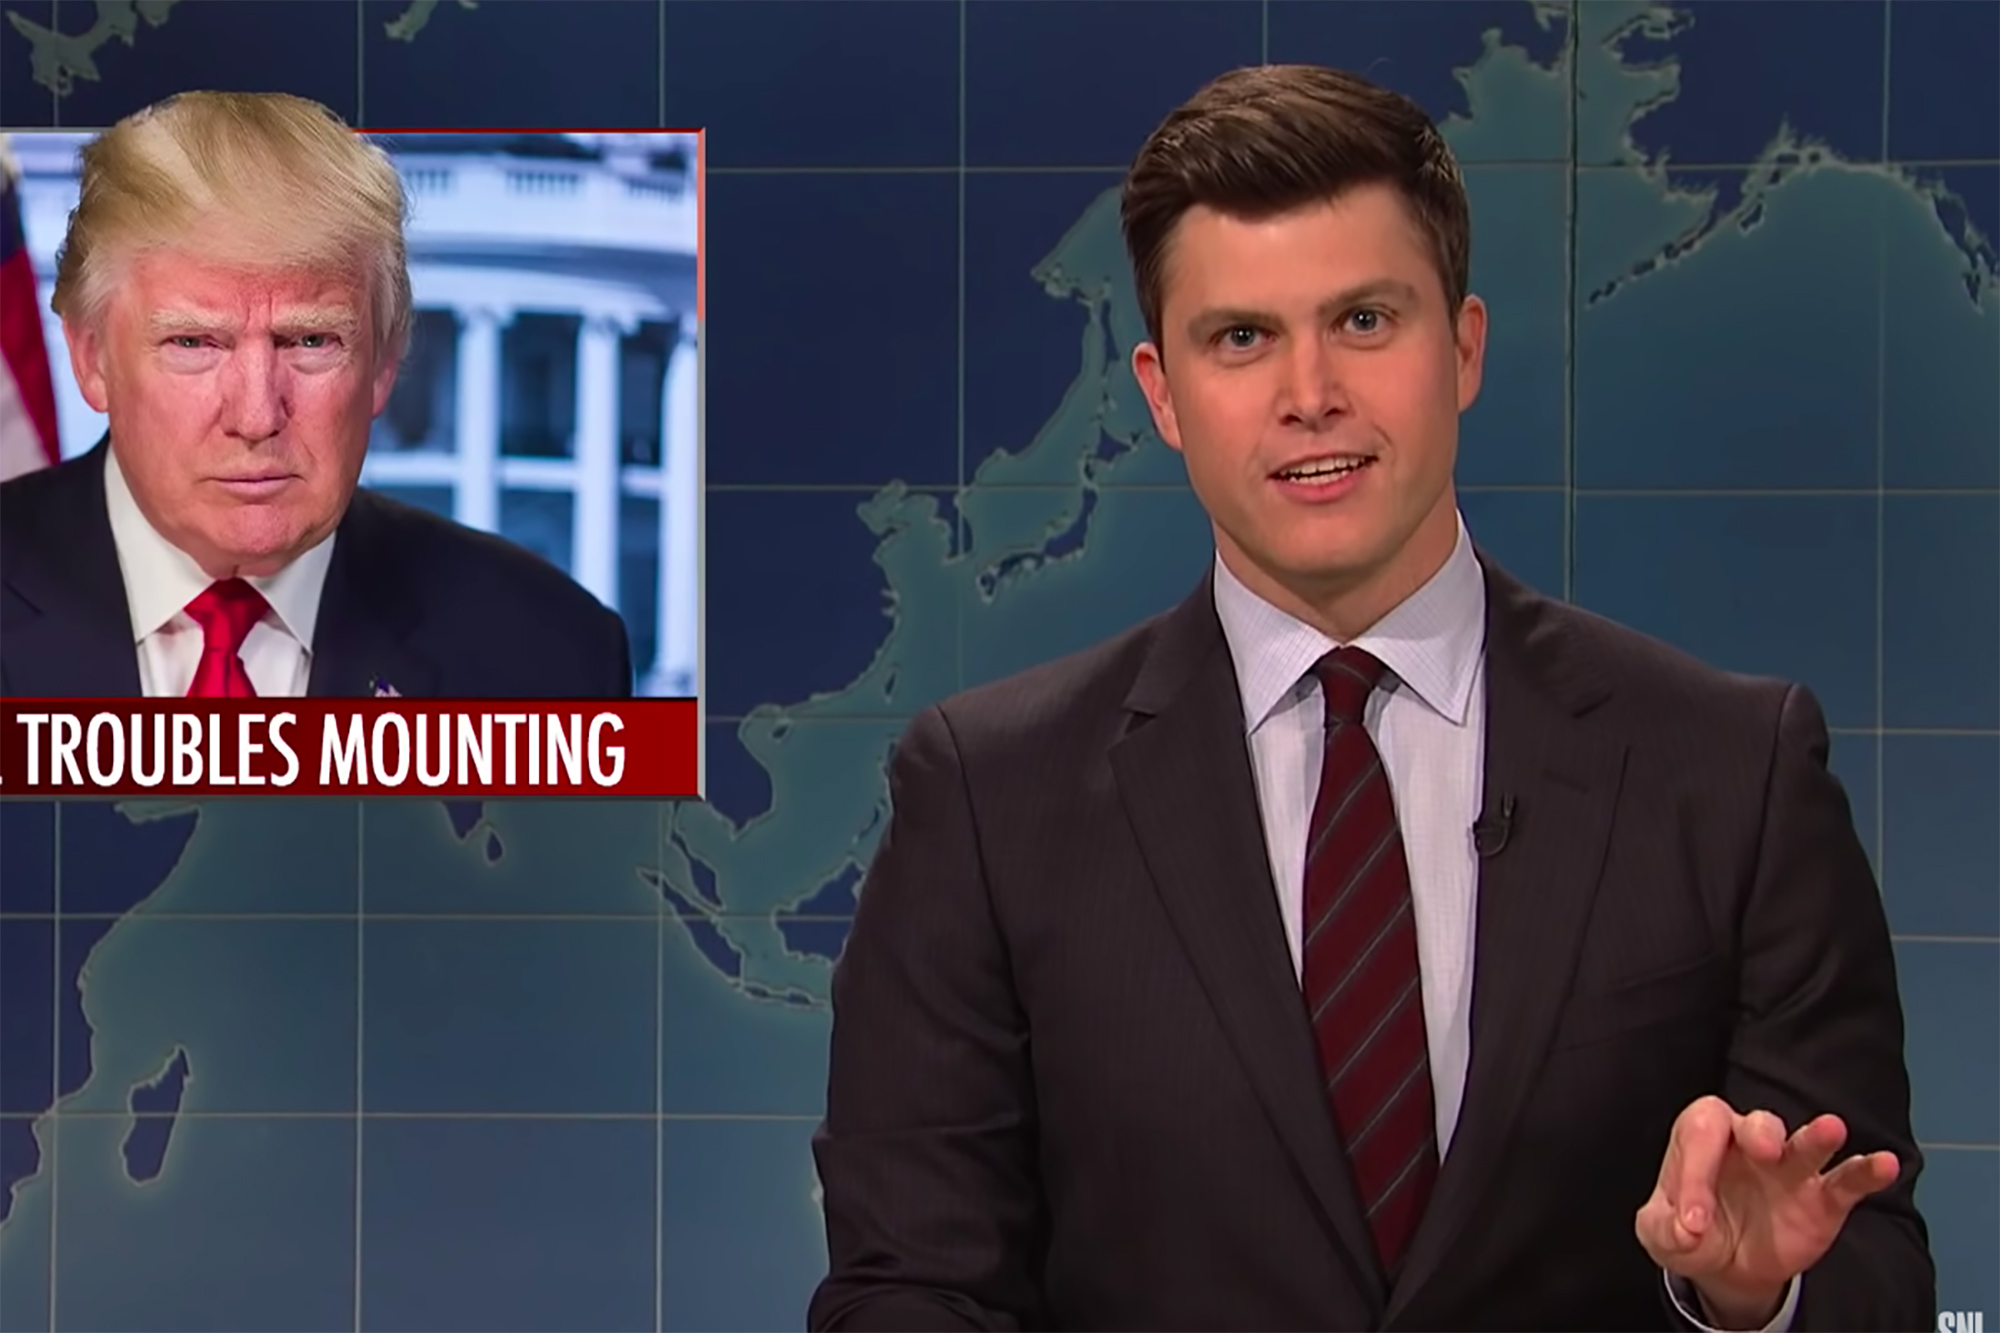 'SNL' Destroys President Trump, Causing Him to Call for Courts to Intervene